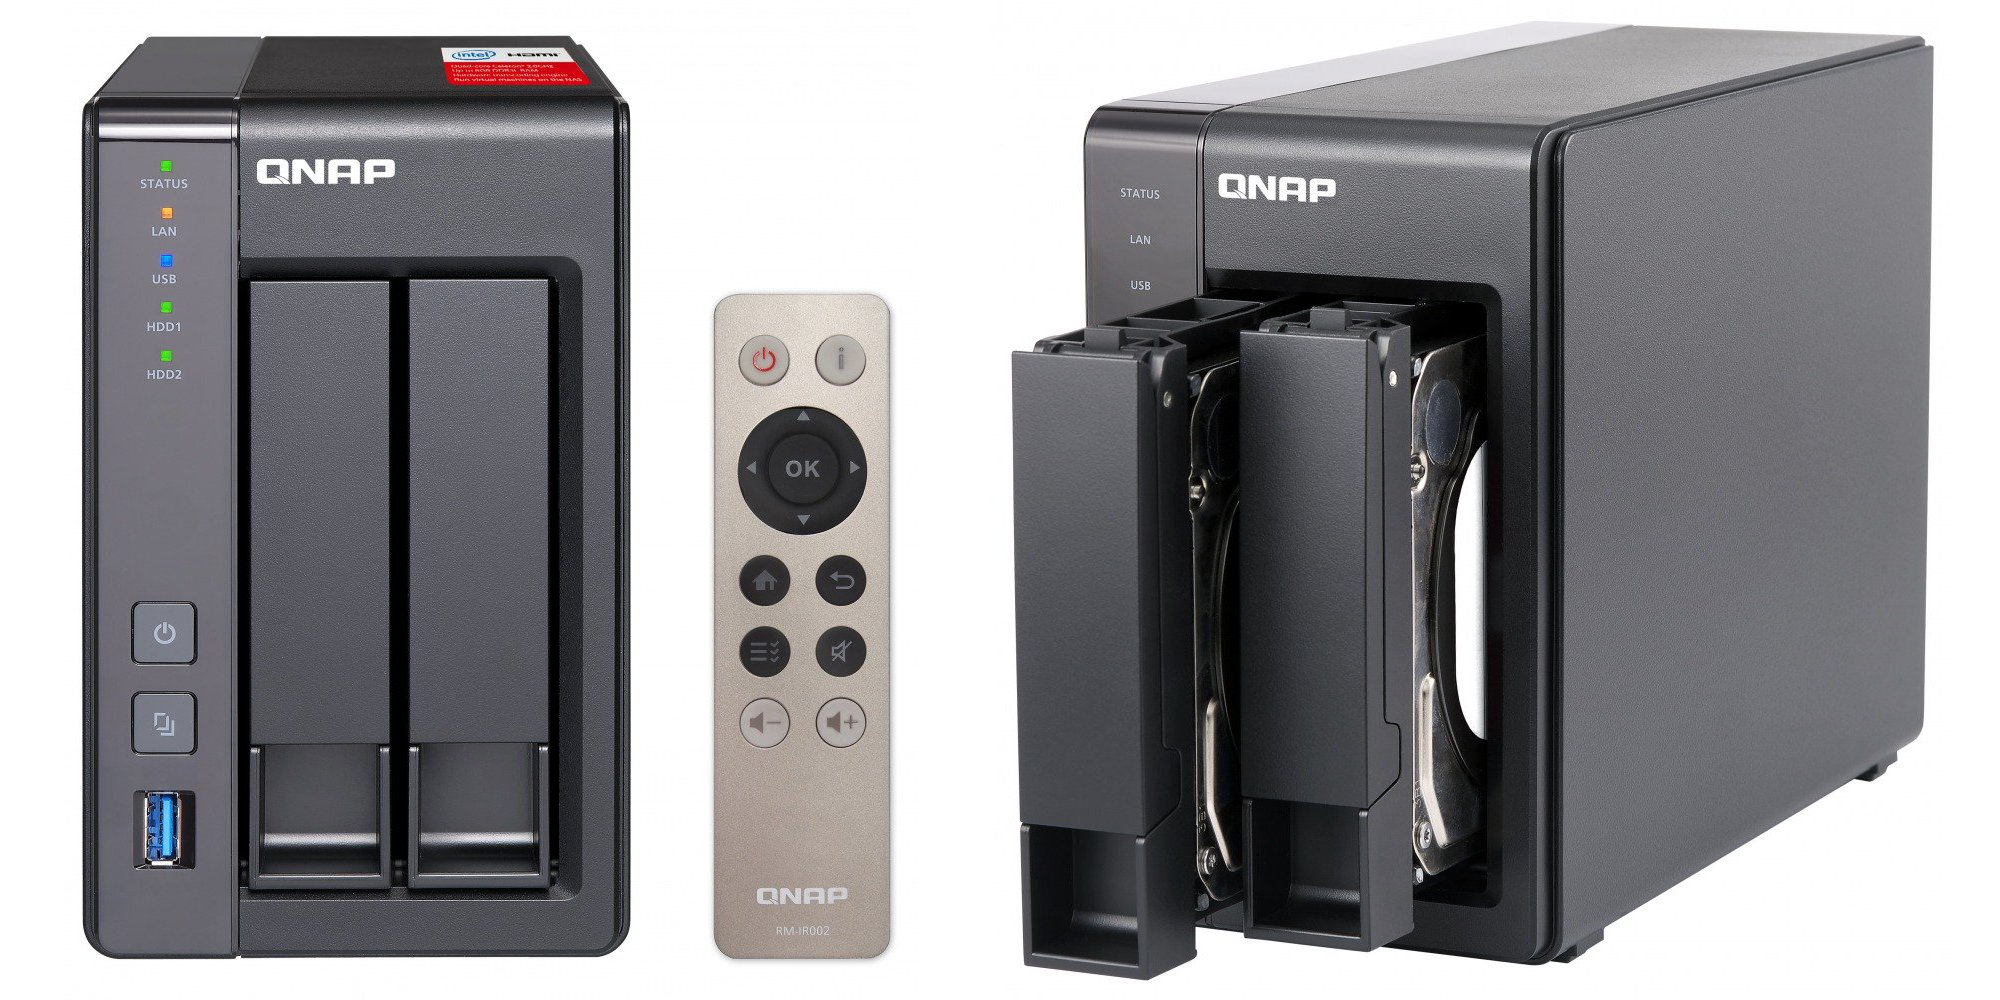 QNAP's Quad-Core, Plex-friendly, 2-Bay NAS nearly hits its Amazon low at $262.50